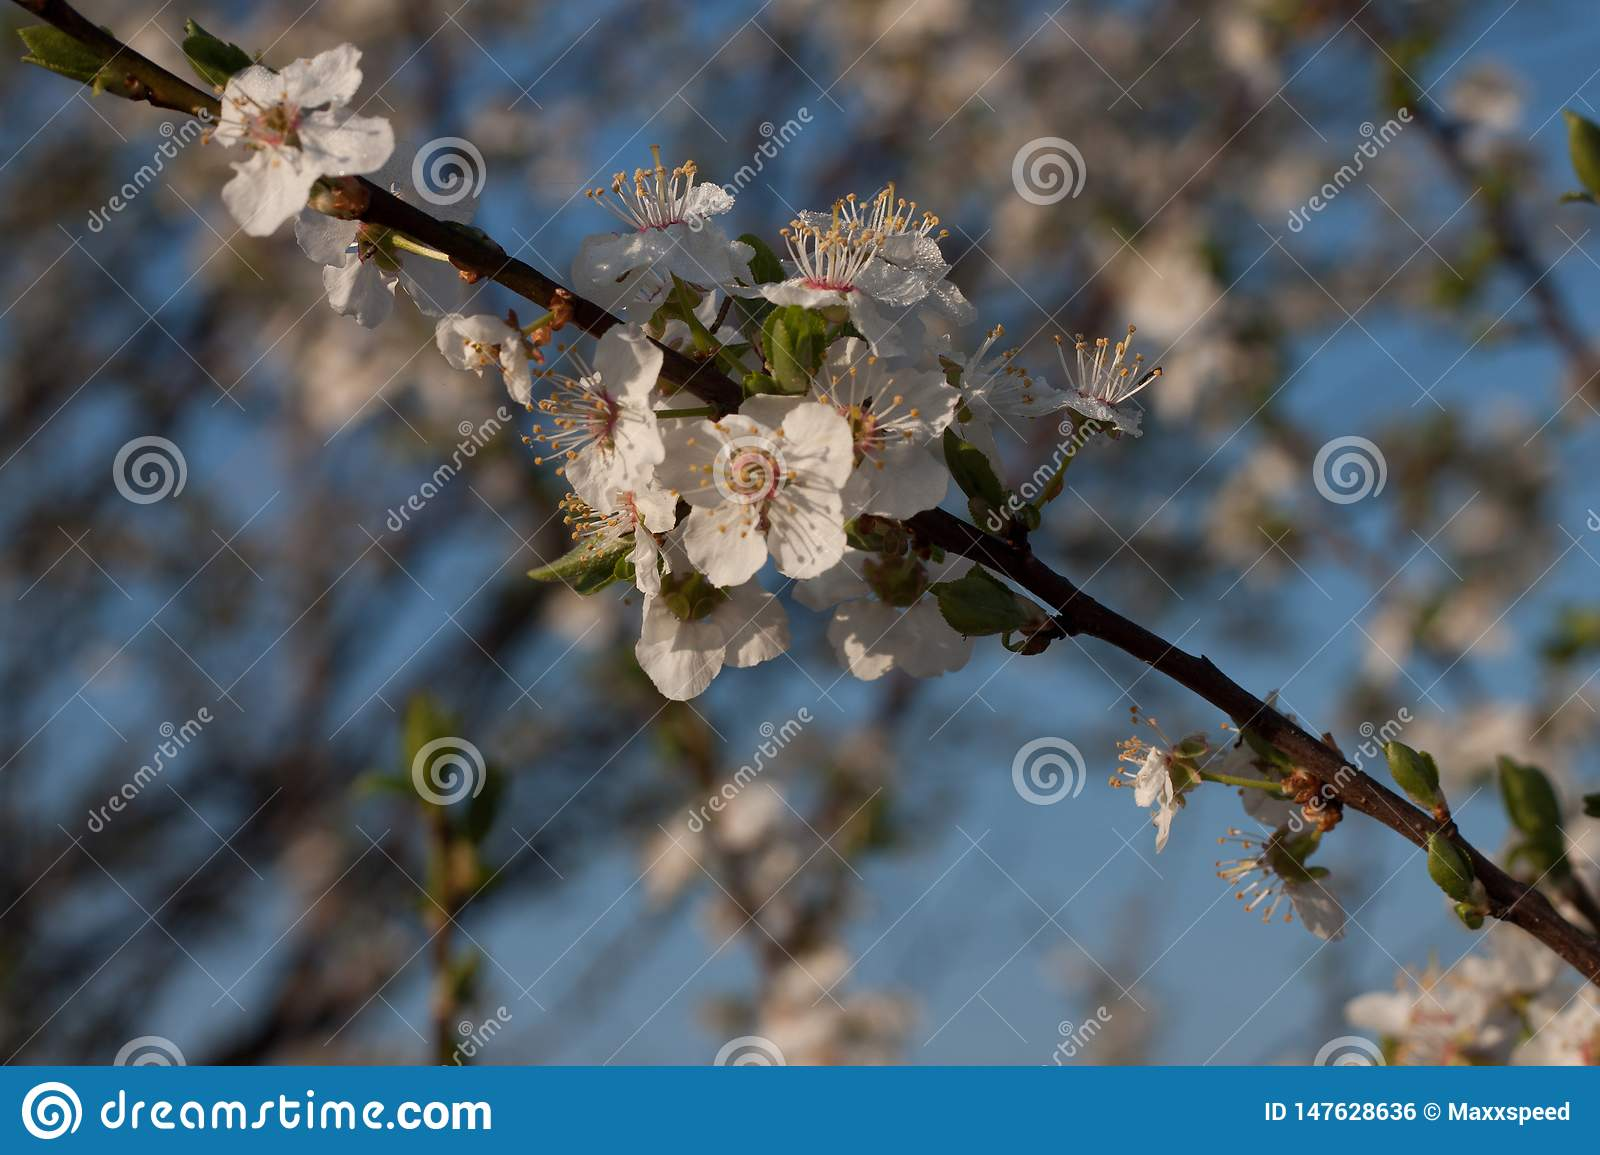 Inflorescence of an apple